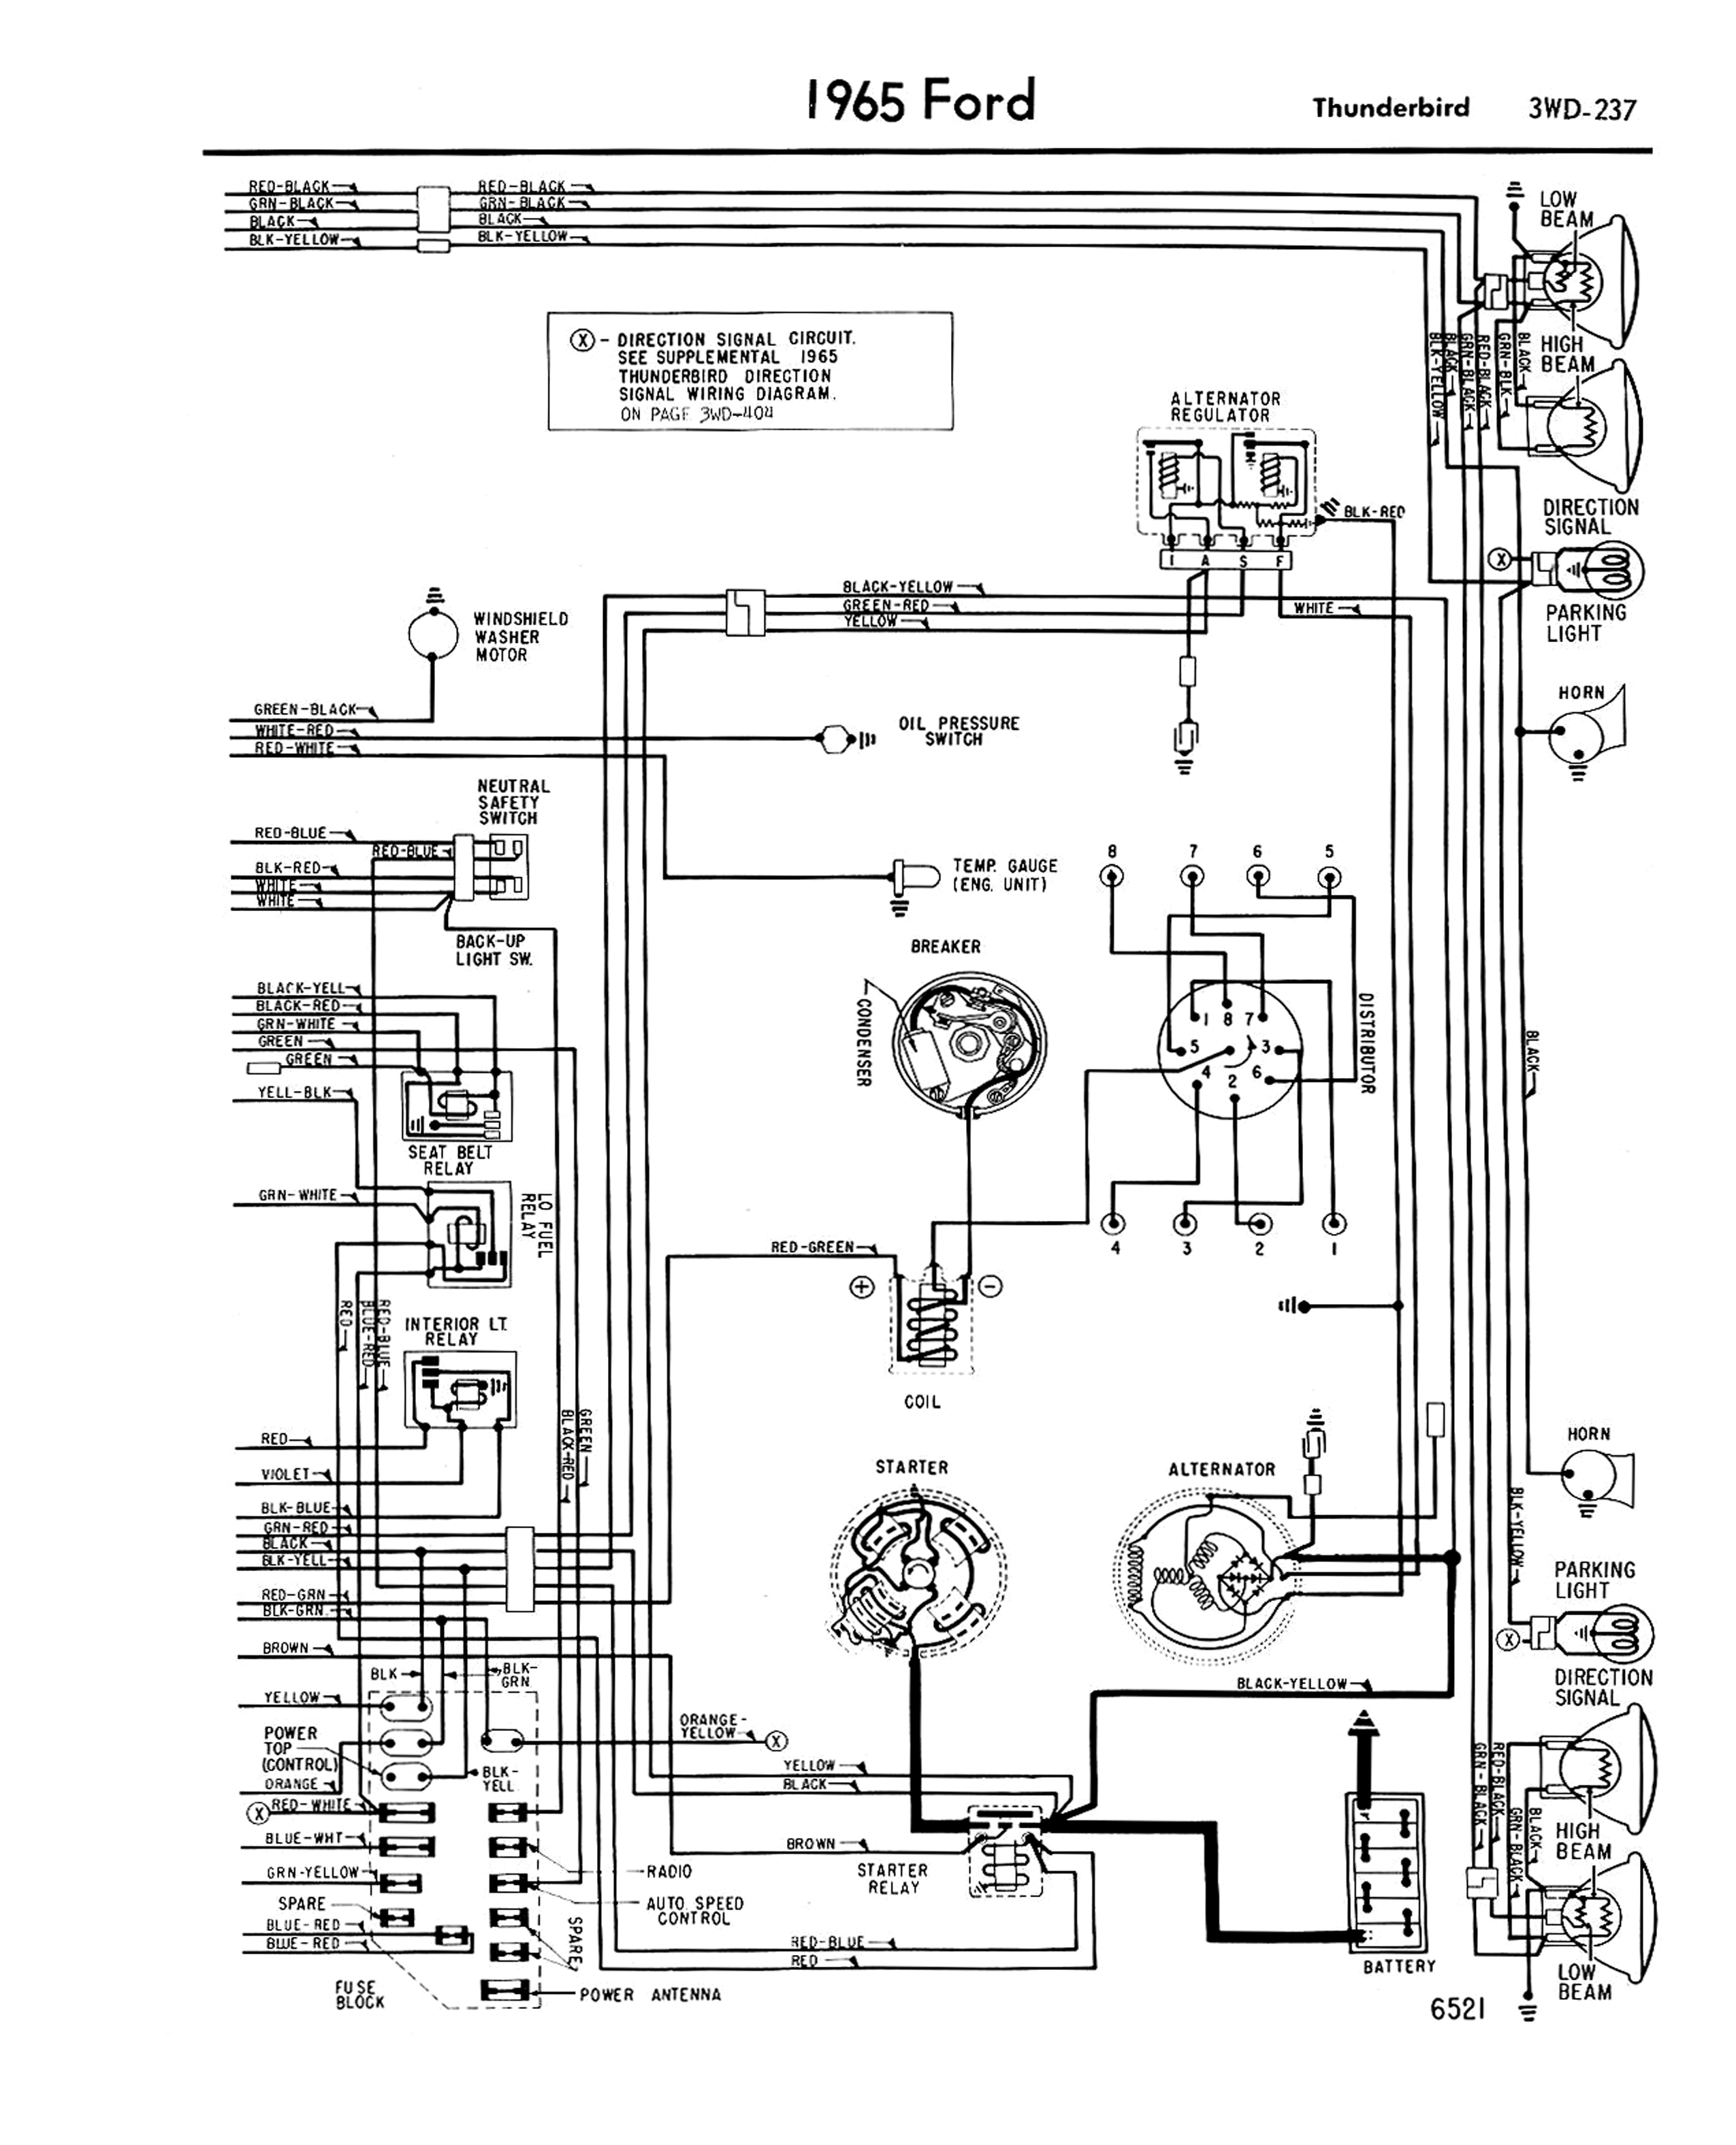 65TbirdWiringDiagramRight 1965 ford f100 wiring diagram 1973 ford truck wiring diagram 79 mustang wiring diagrams at cos-gaming.co